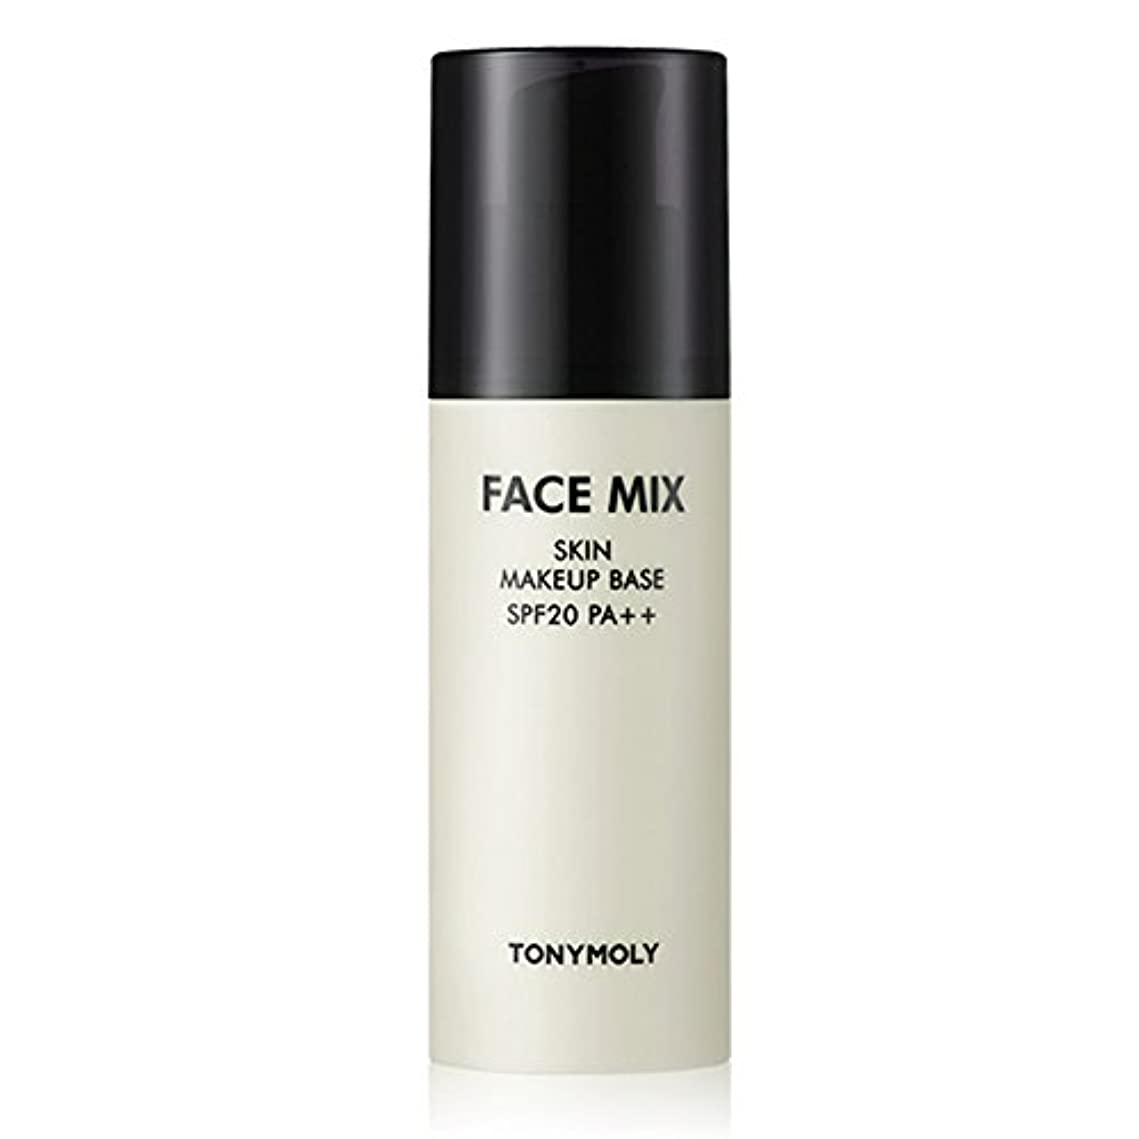 天のフルーティー結婚式TONYMOLY FACE MIX SKIN MAKEUP BASE 02 MIX LAVENDER SPF20 PA+++ 30g